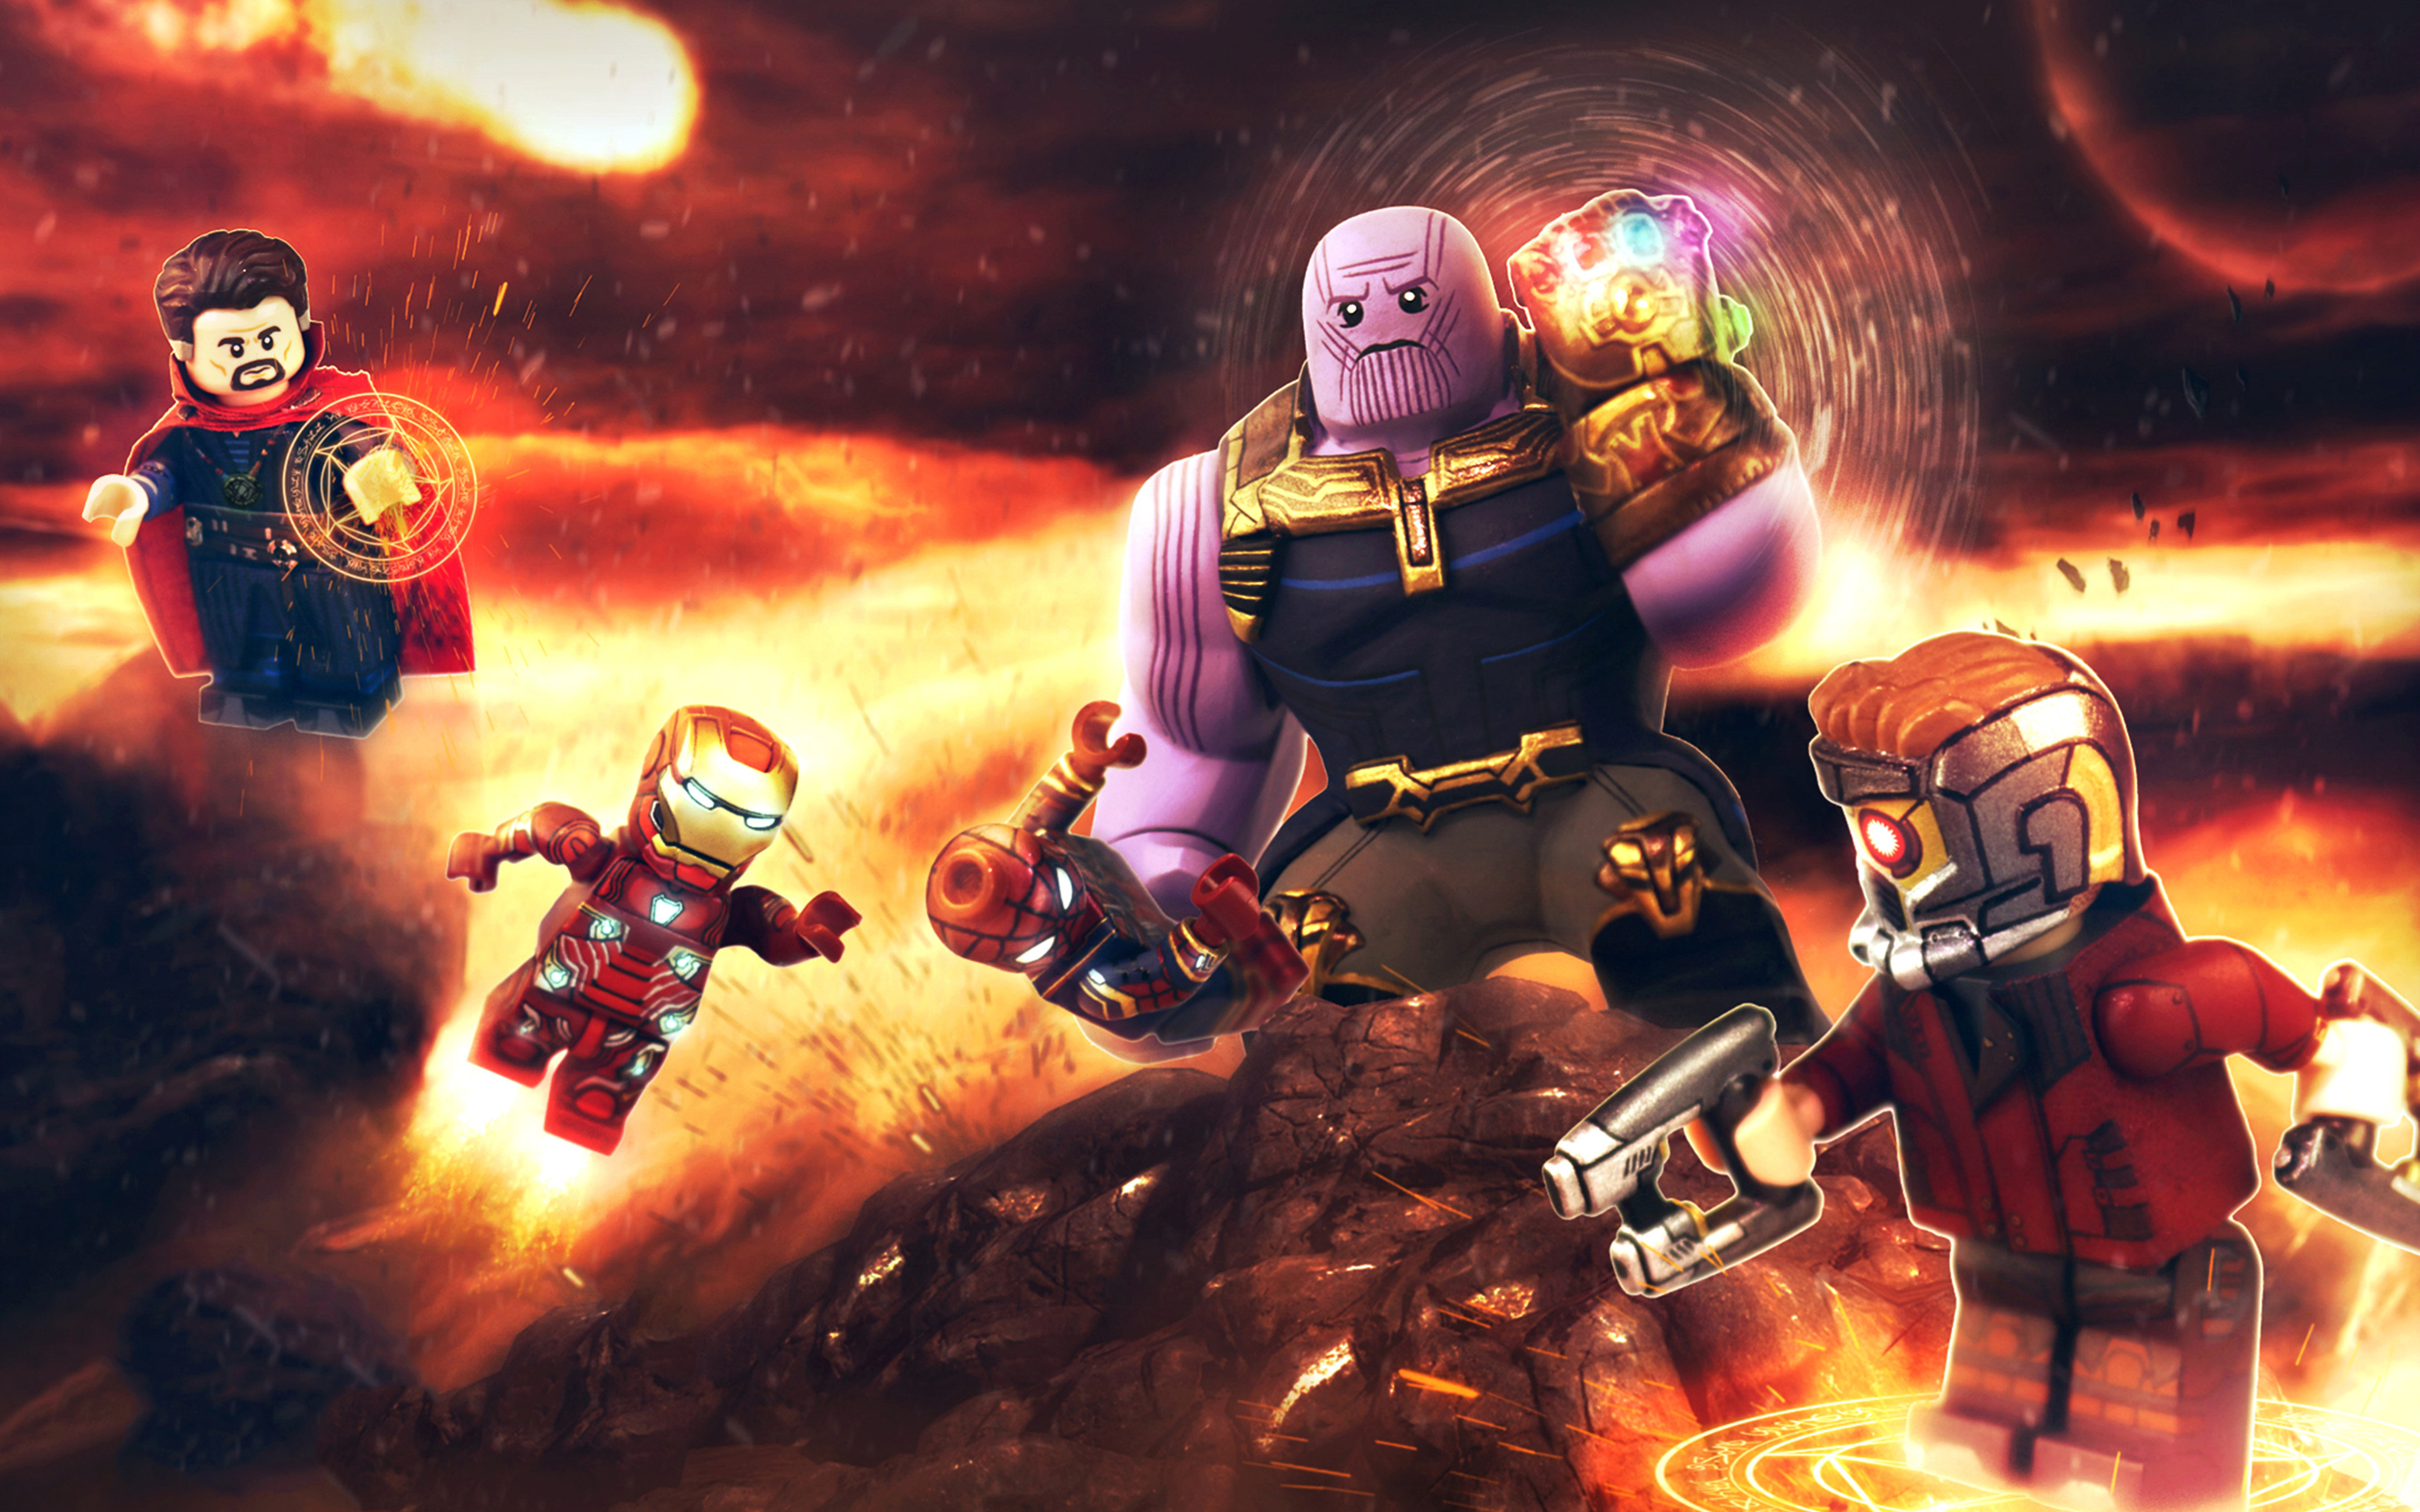 3840x2400 Avengers Infinity War Lego 4k Hd 4k Wallpapers Images